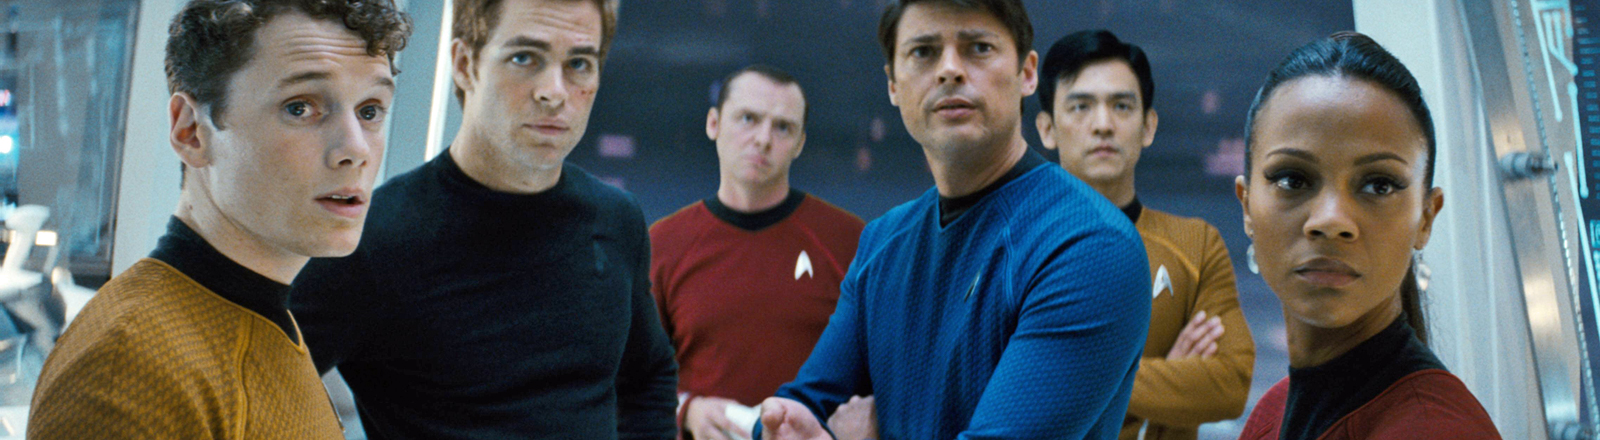 Star Trek: Die Crew der Enterprise um Captain James Kirk.